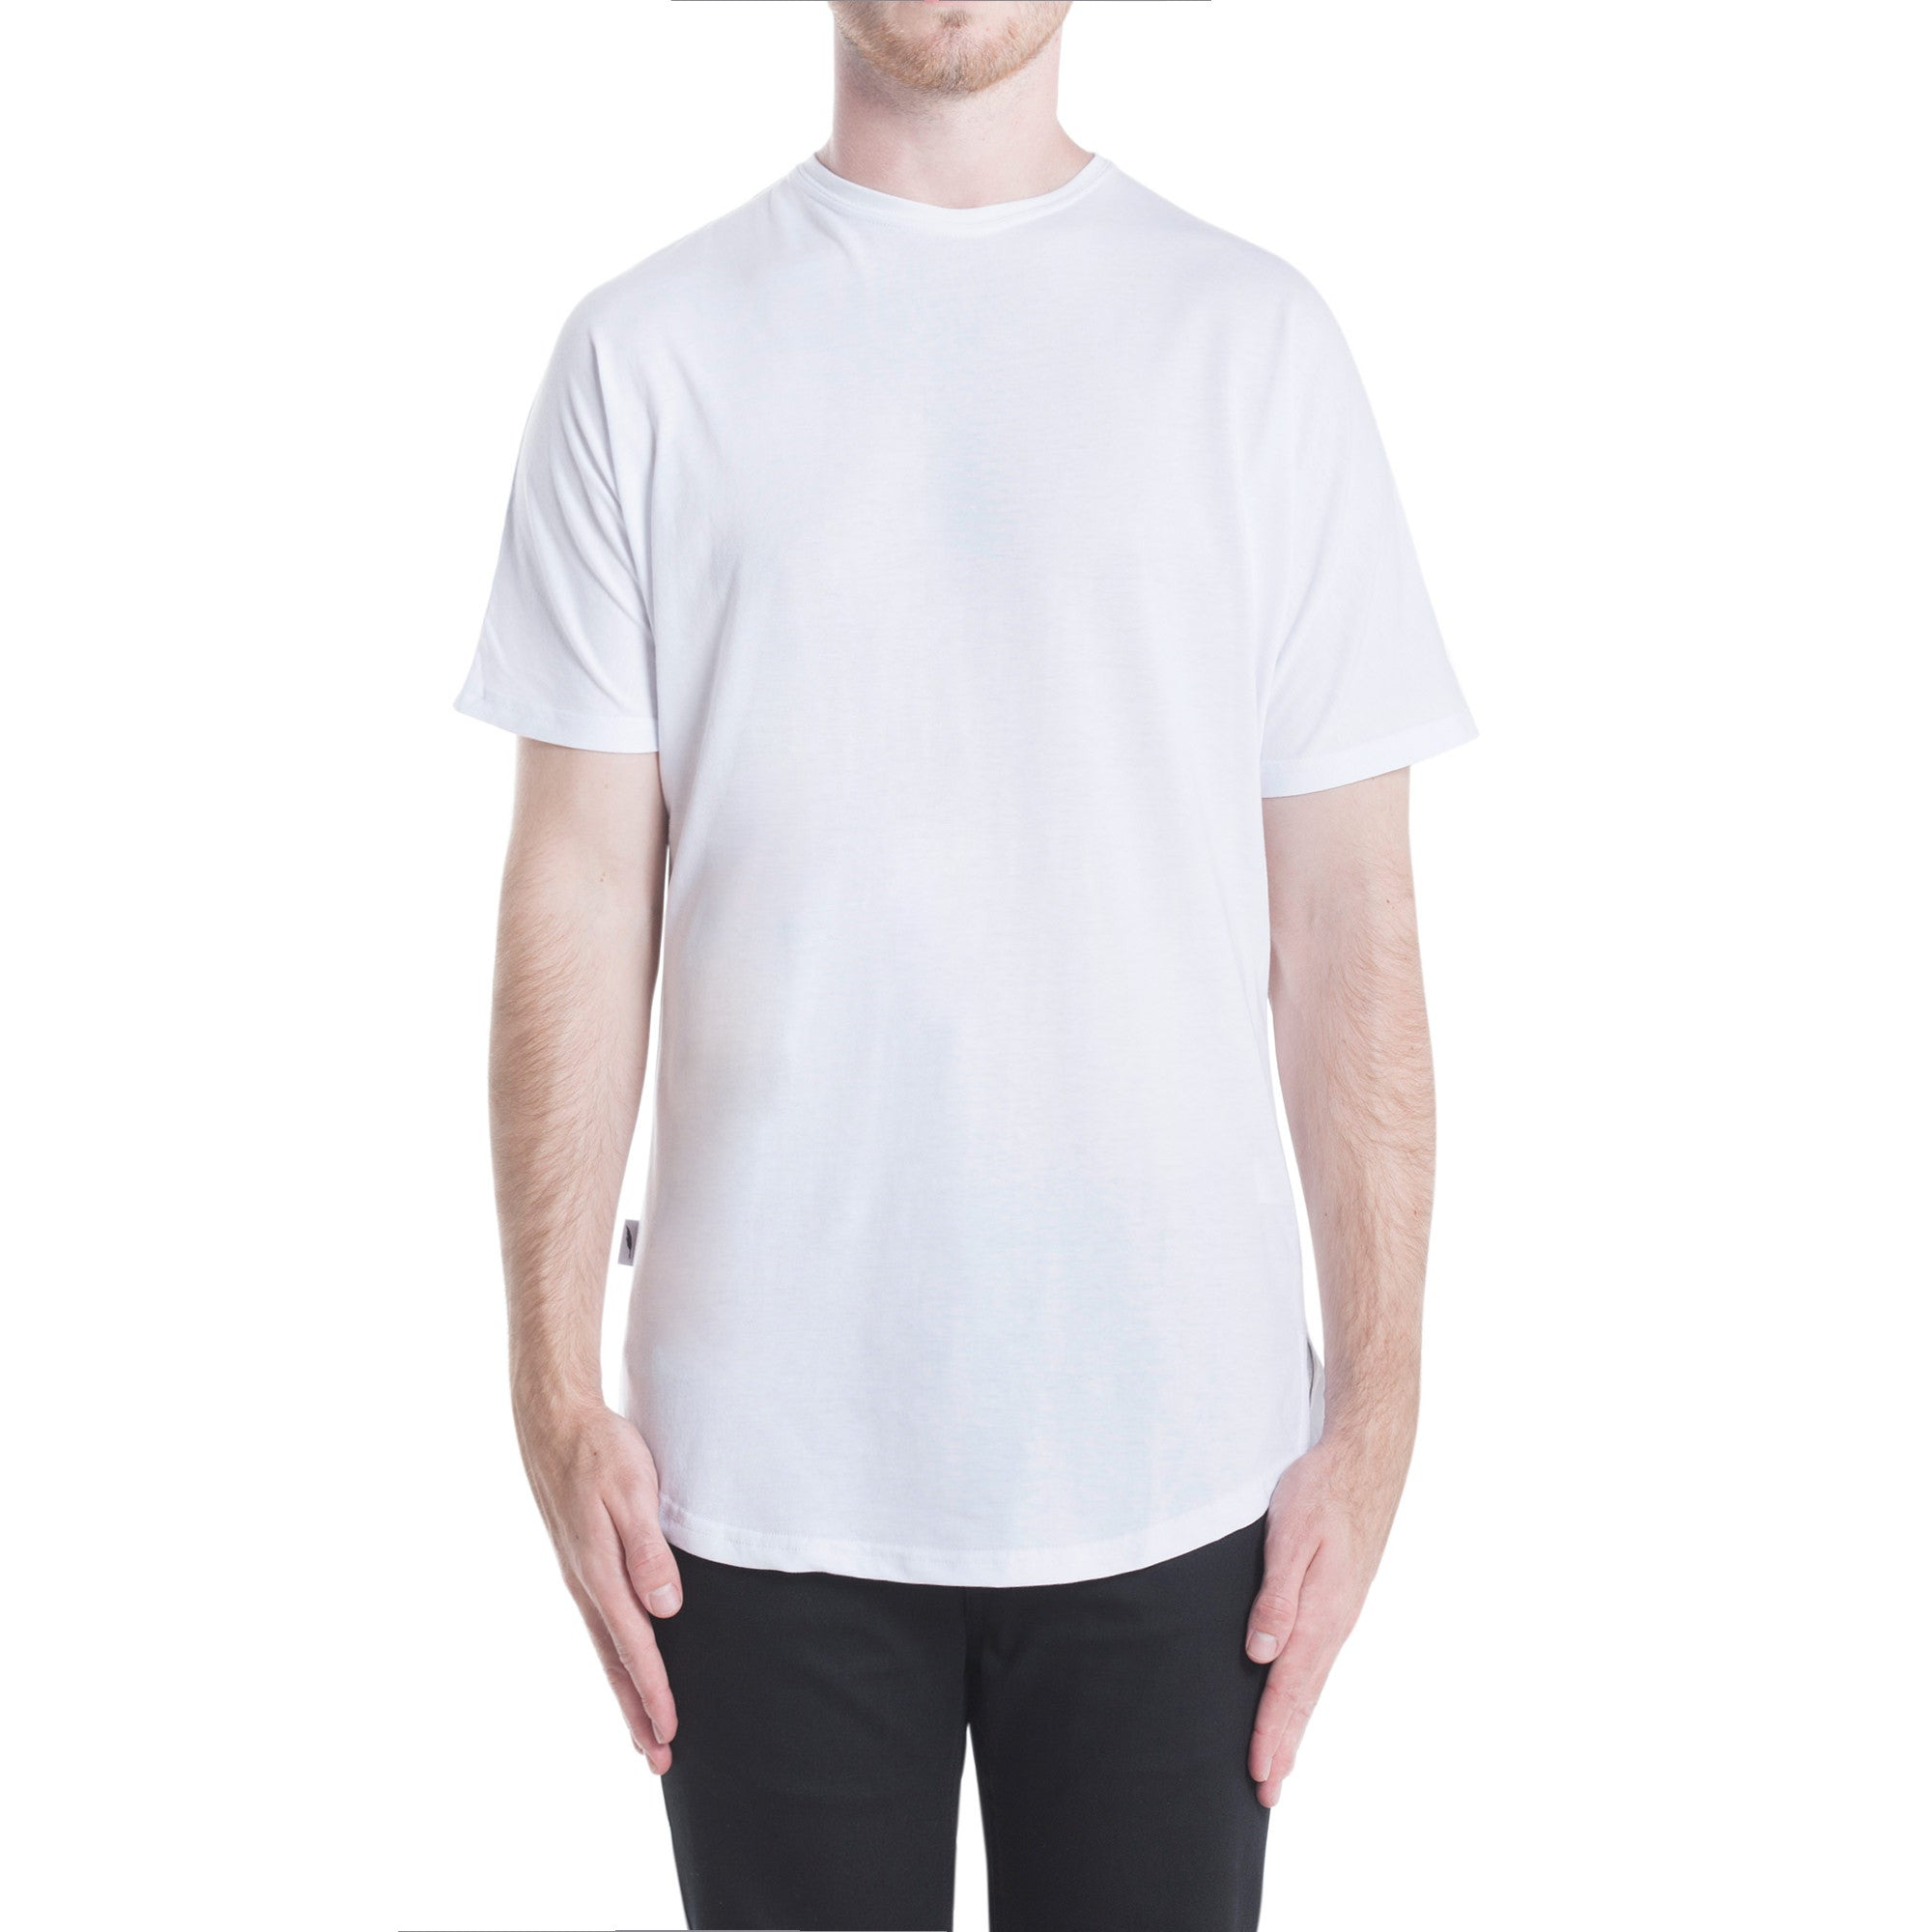 Index S/S Scallop Tee - White